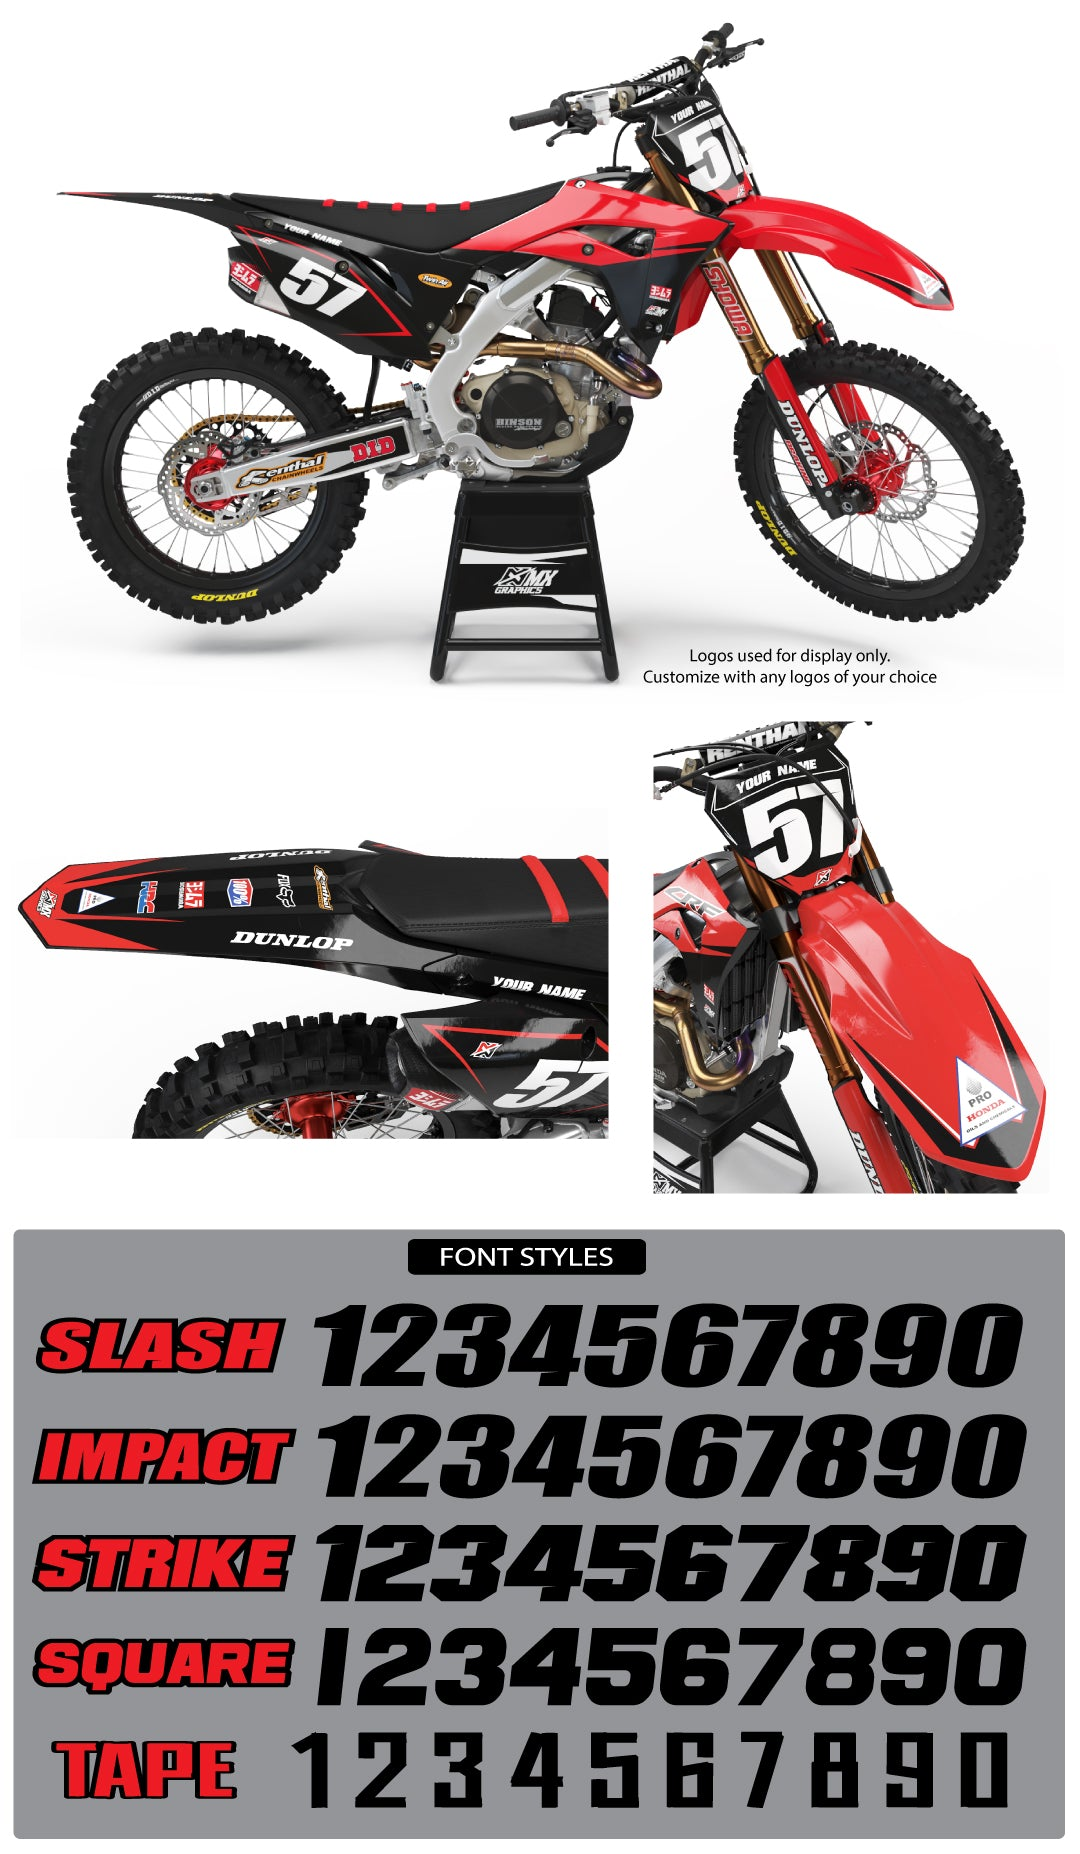 Honda MX13 Graphic Kit